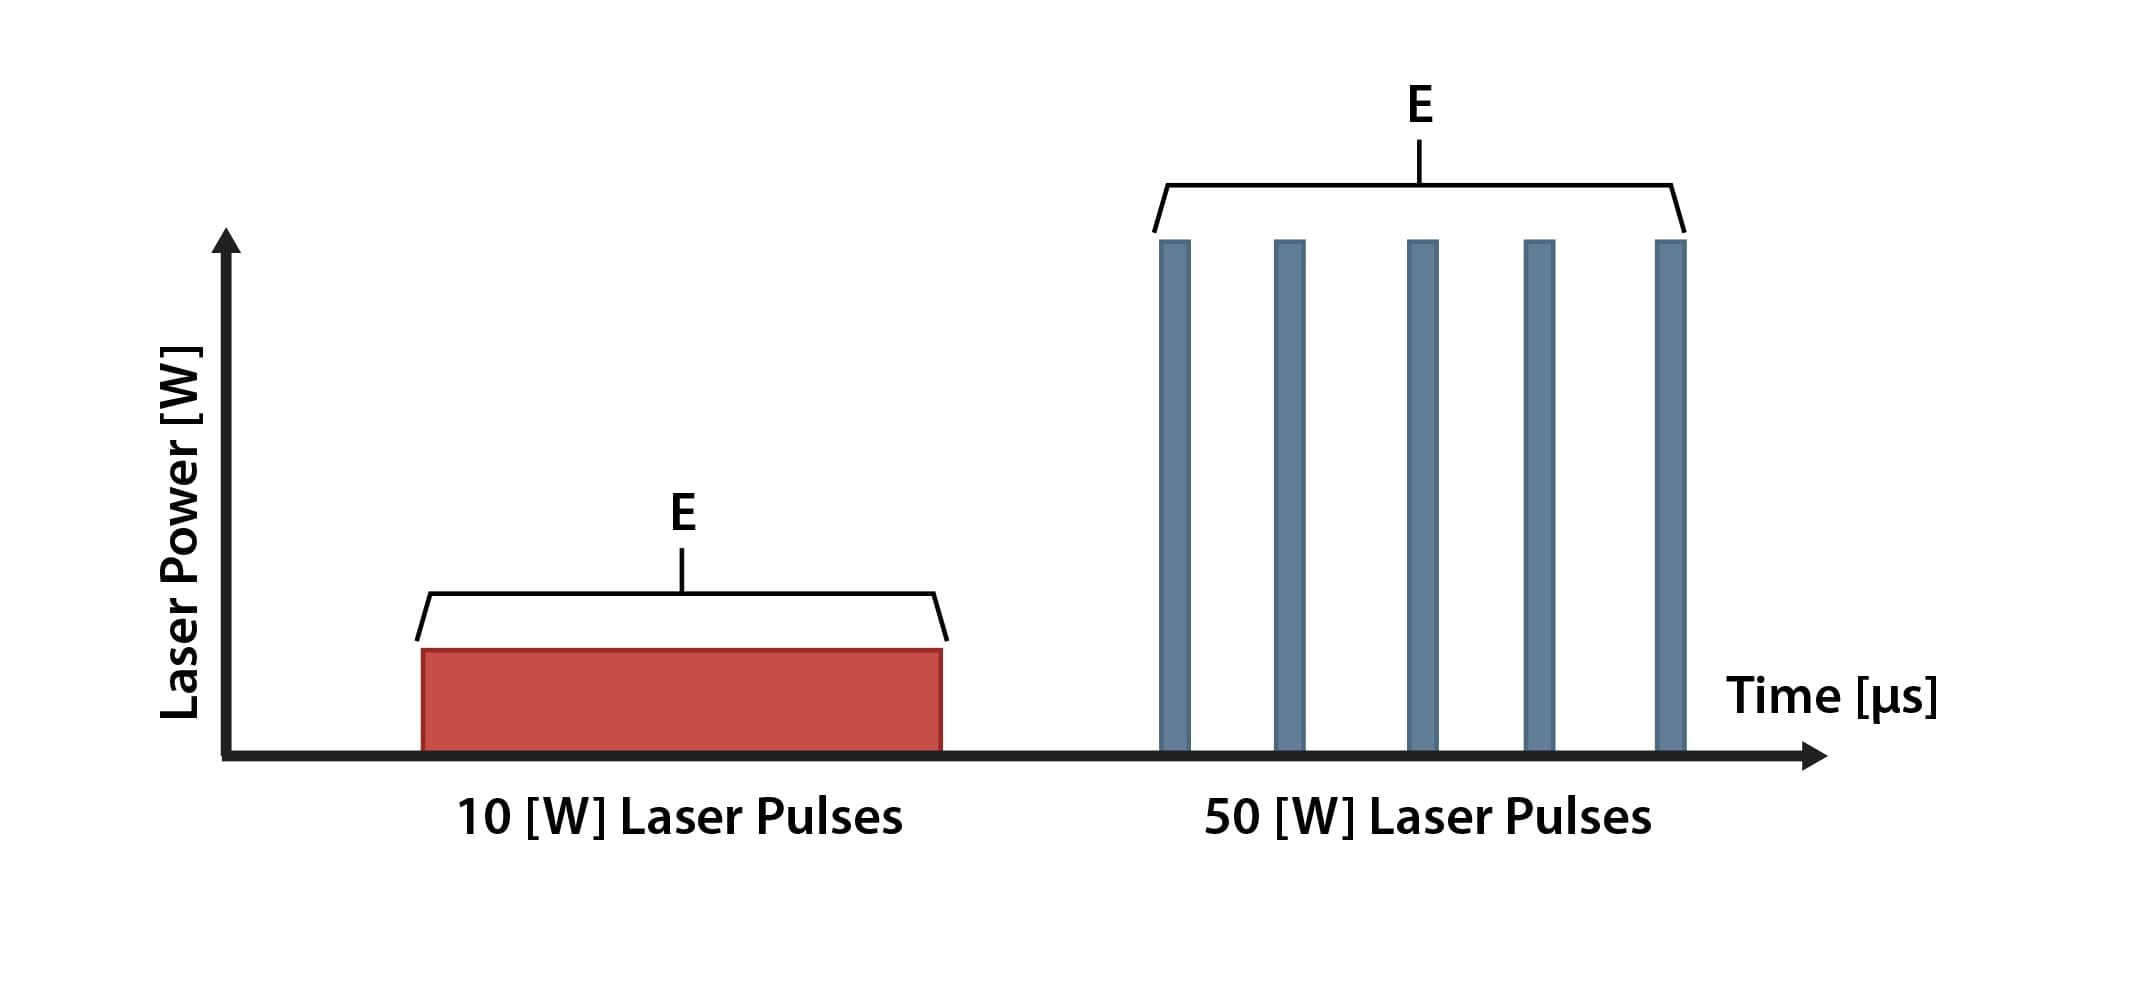 laser_sources_power_and_pulse laser sources for universal laser systems platforms Basic Electrical Wiring Diagrams at crackthecode.co